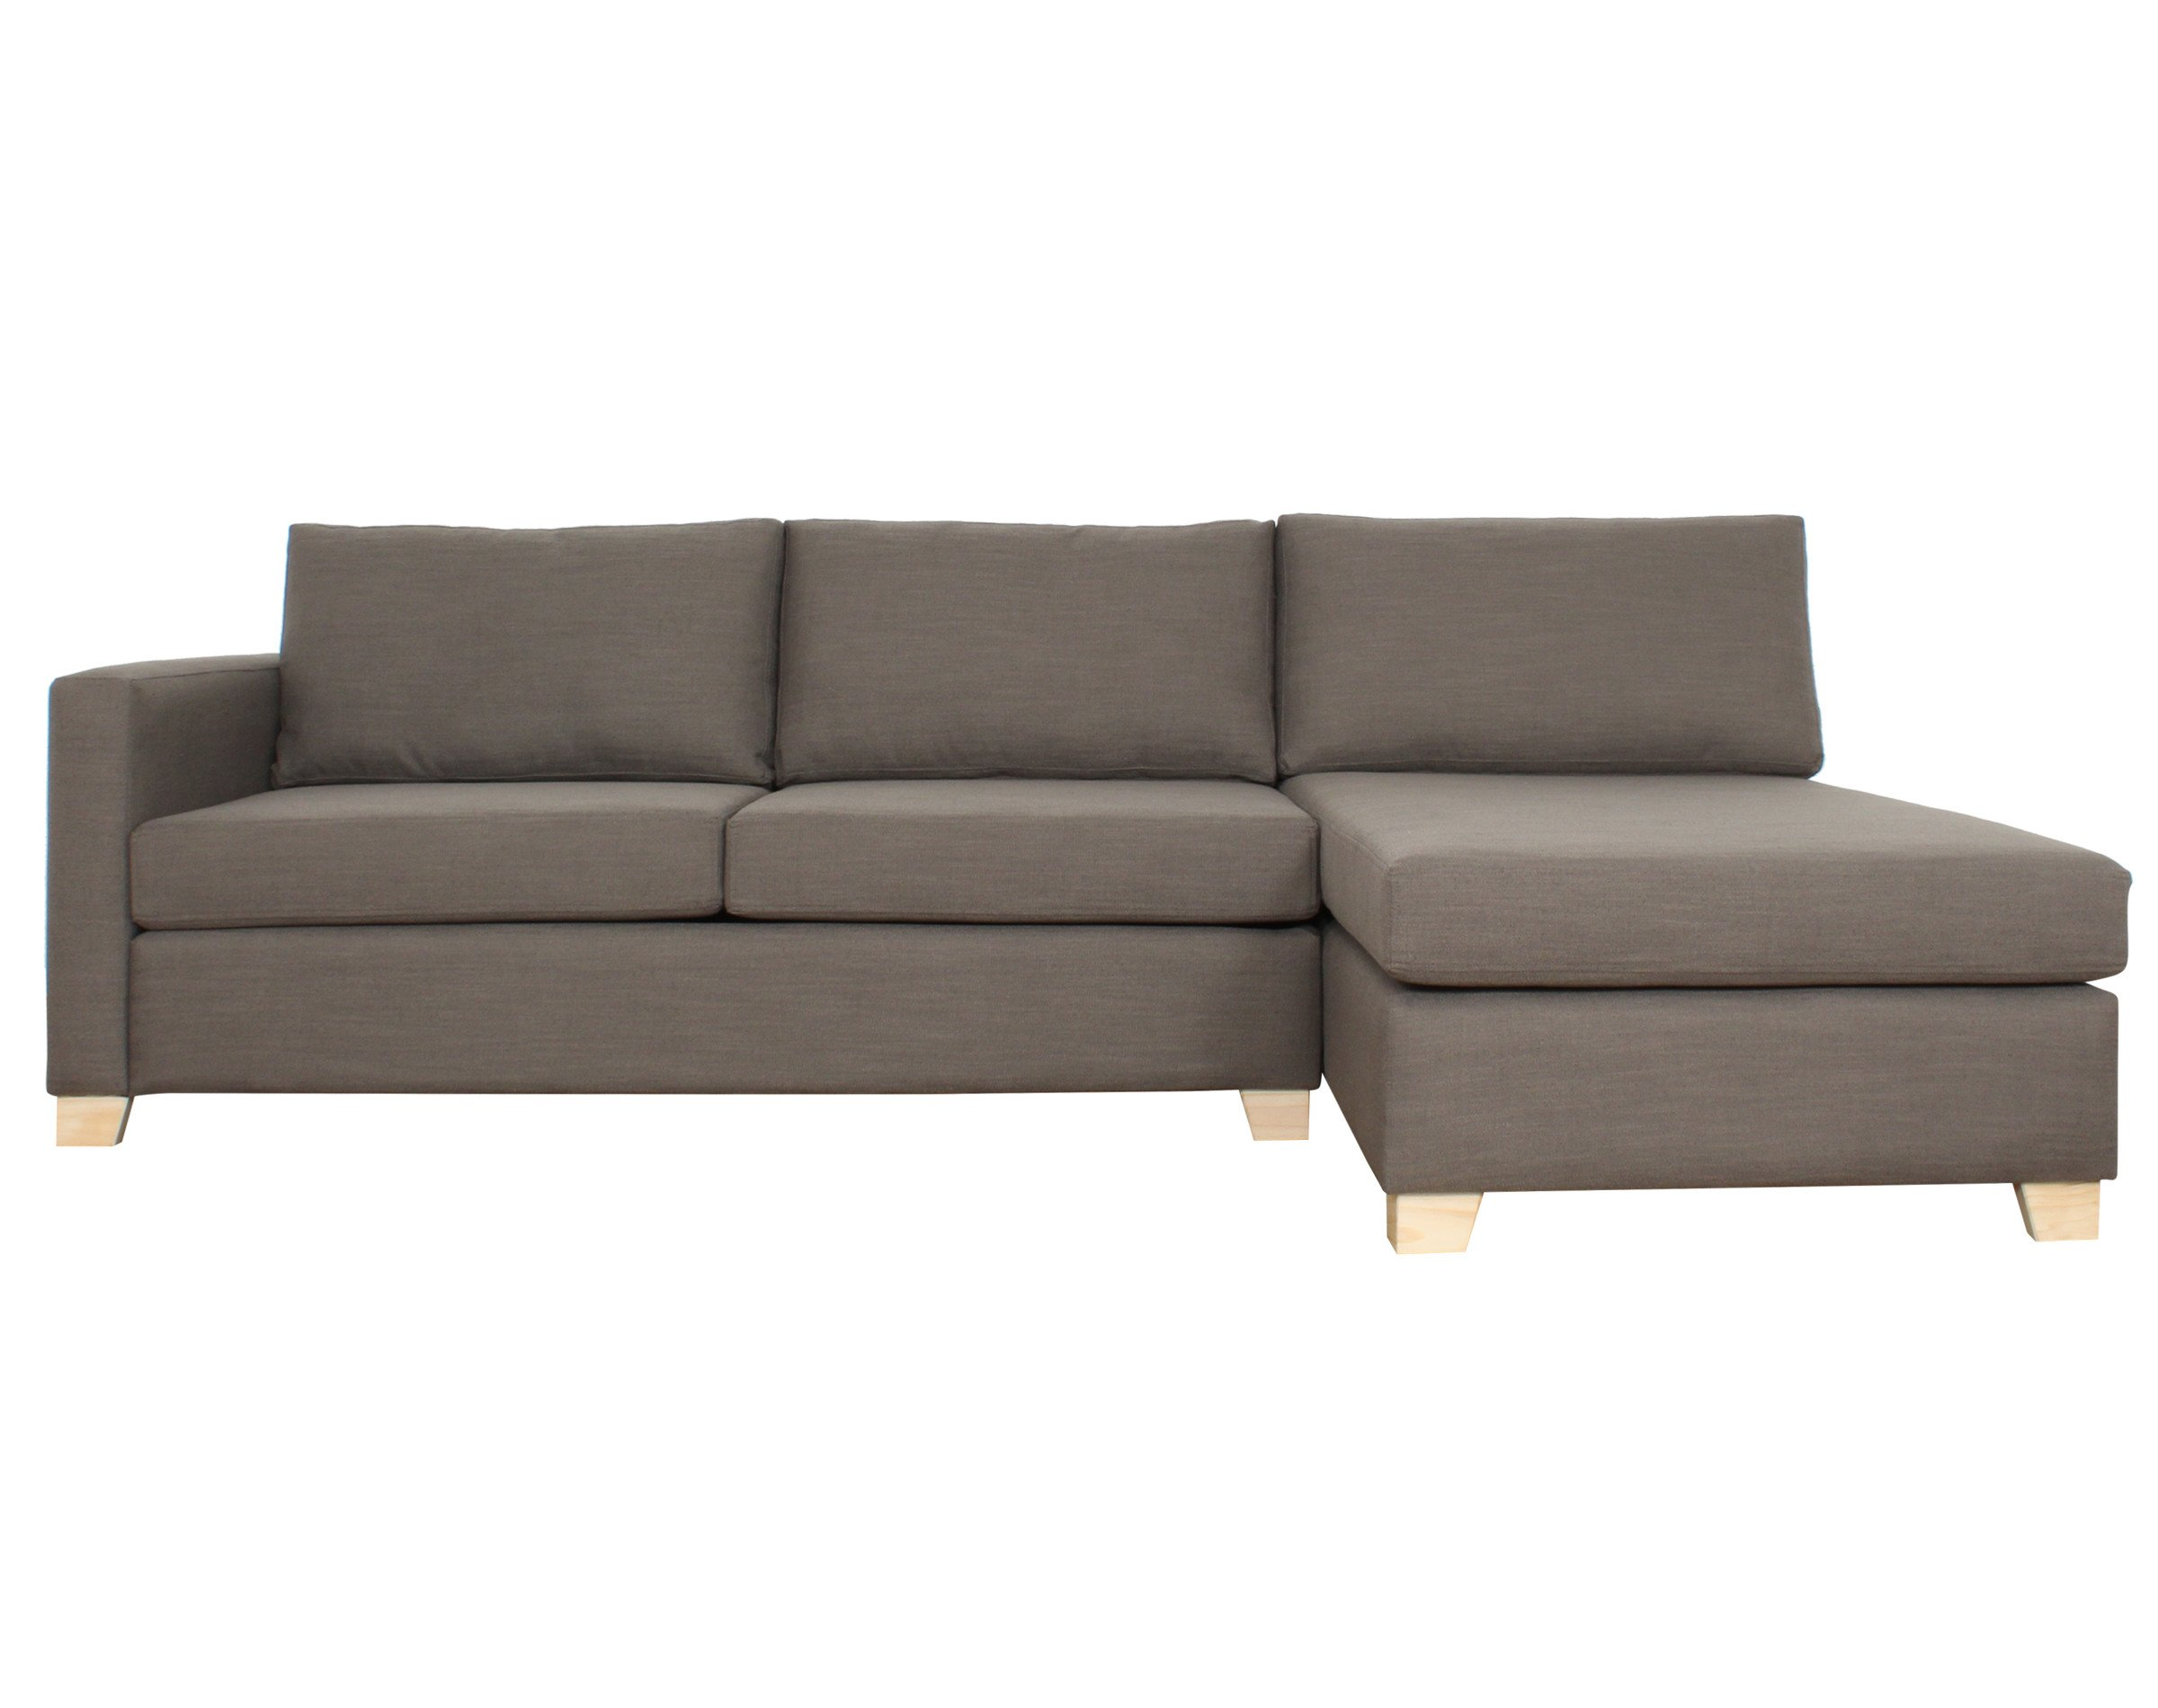 Sofa Cama New York 1